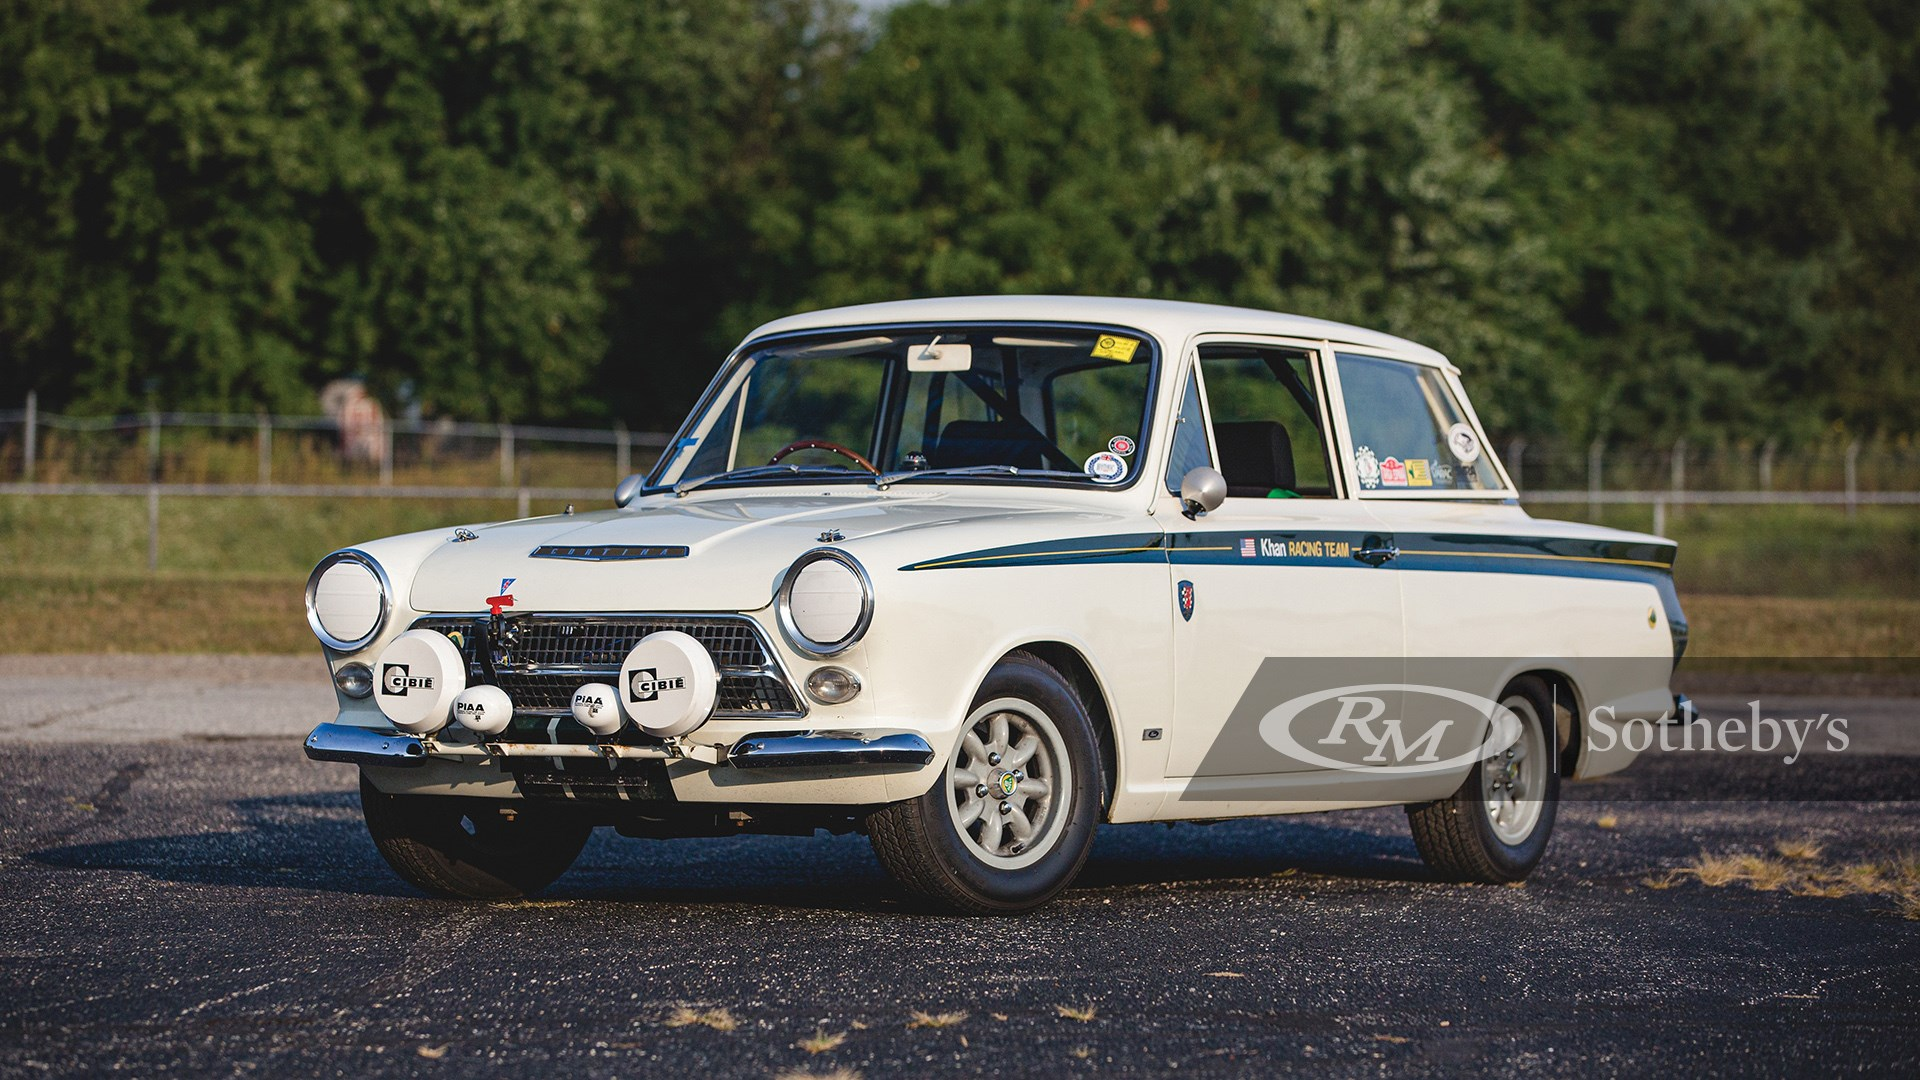 RM Sotheby's The Elkhart Collection 2020, Blog, 1967 Ford Cortina Lotus Mk I Rally Car